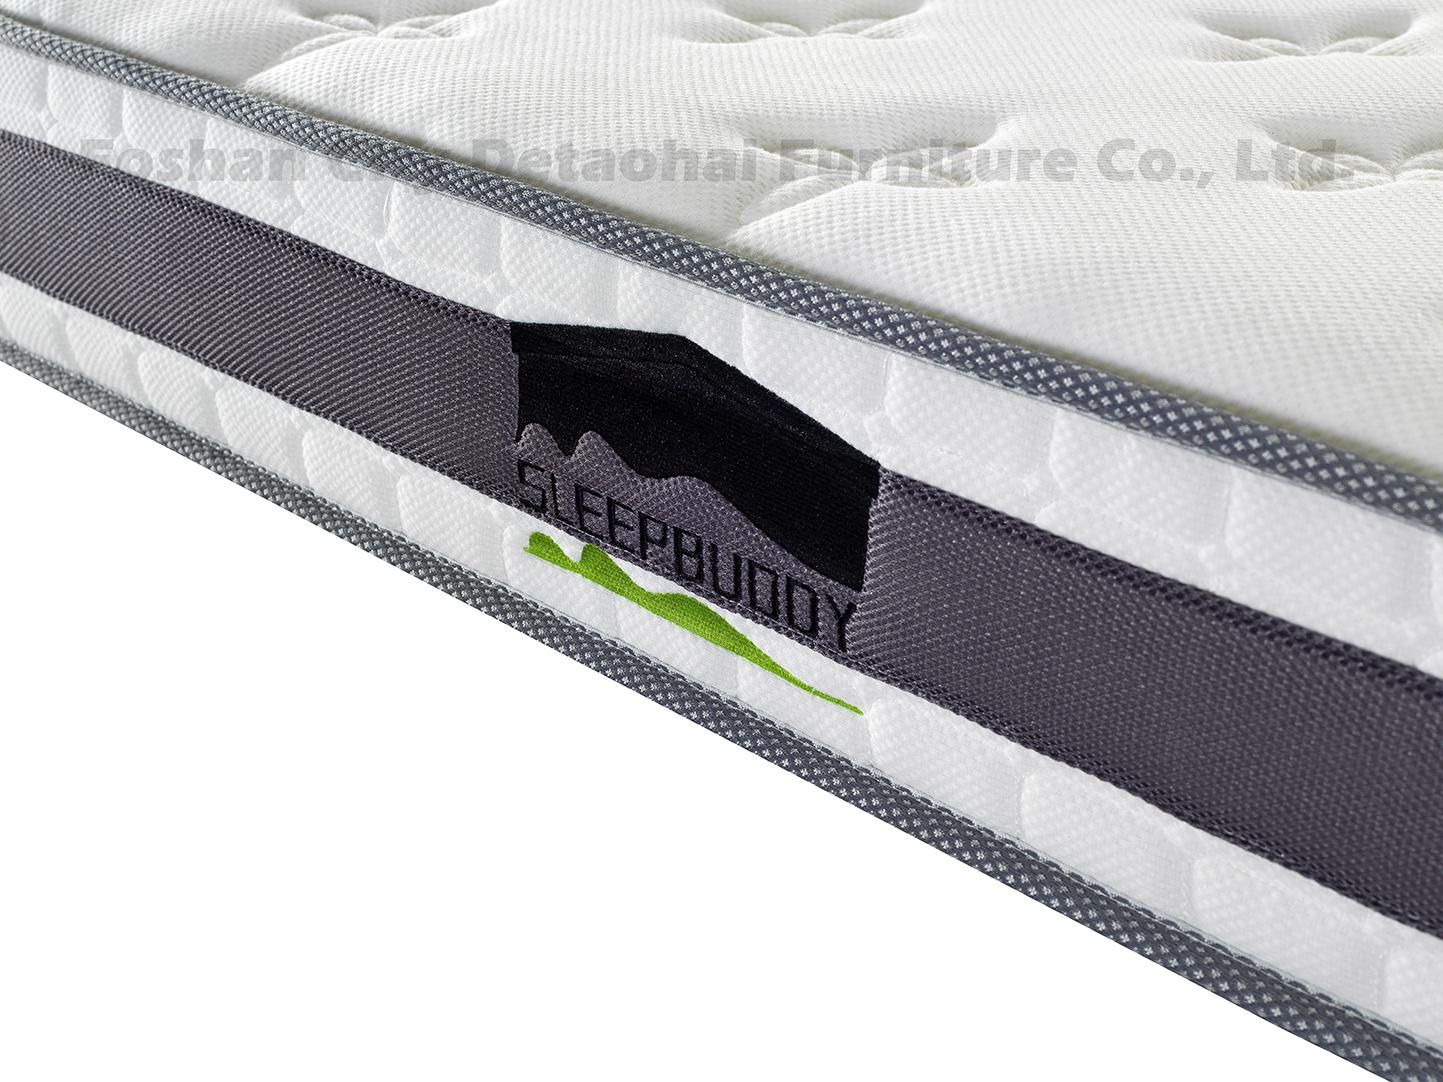 wholesales memory foam mattress with embroidered mark 2